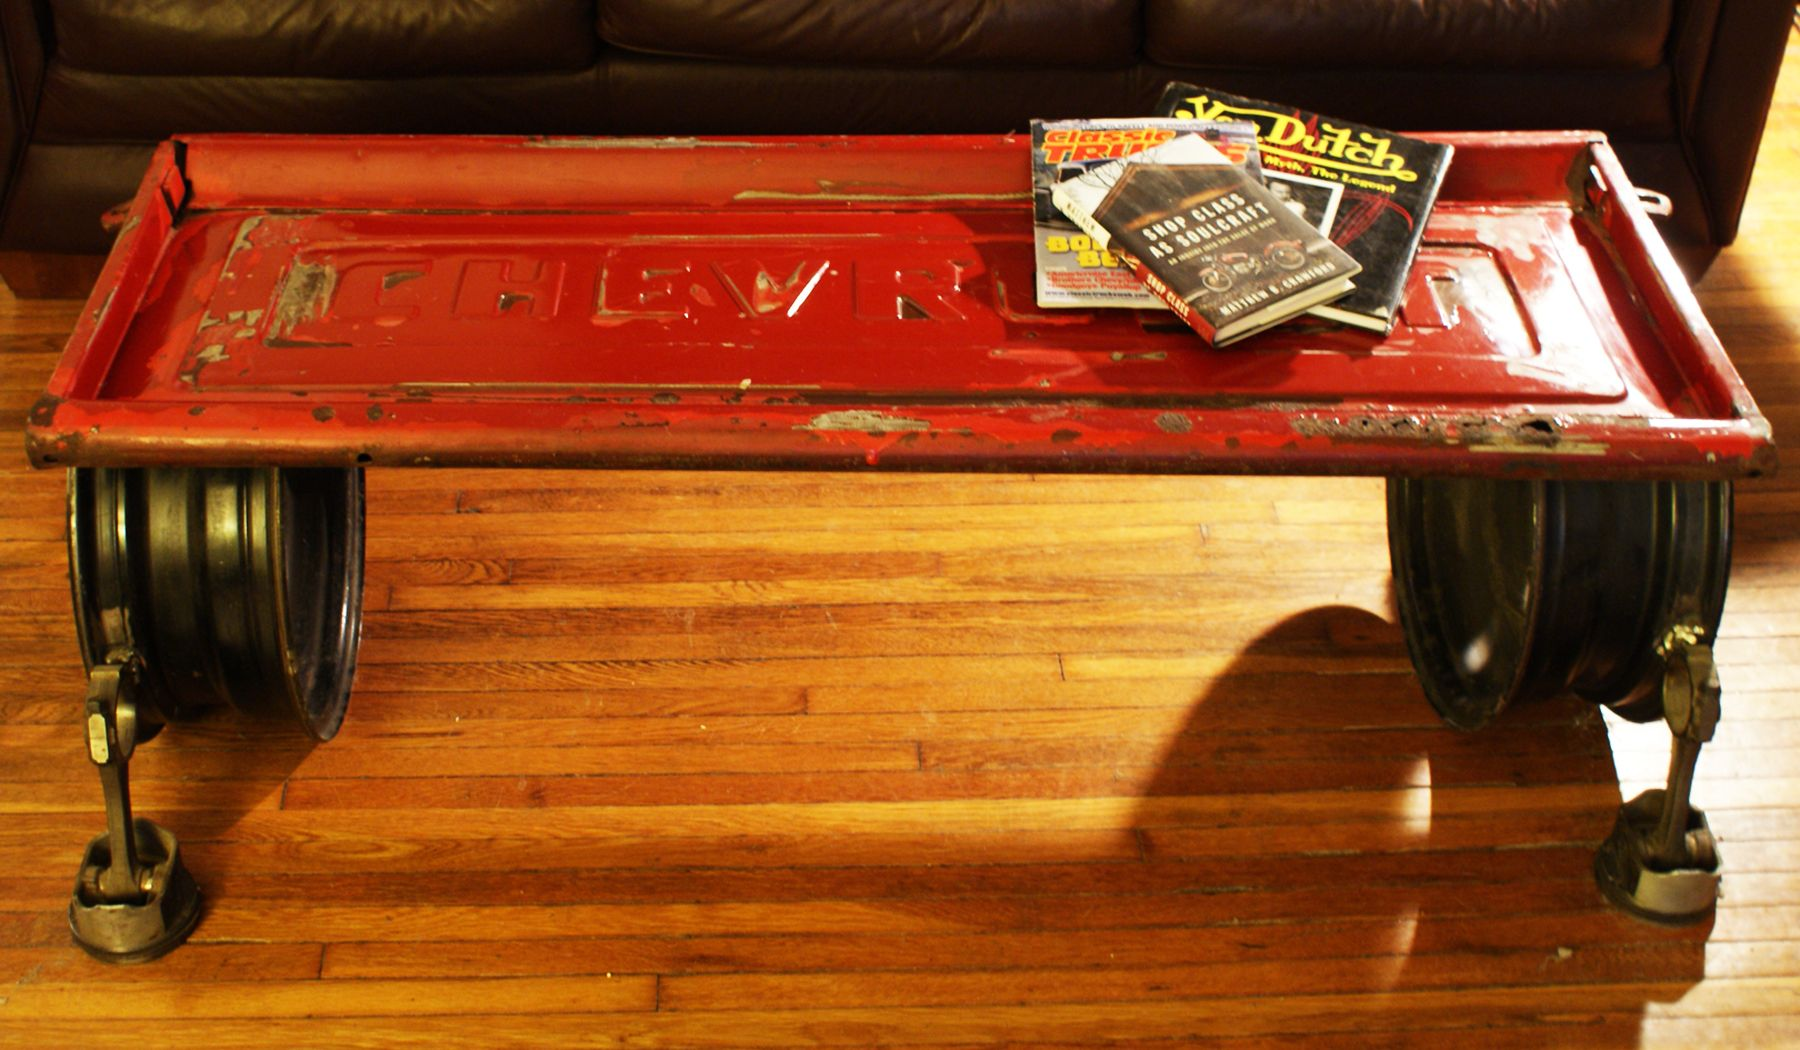 Red Chevy Coffee Table Bench tailgate steel wheels and